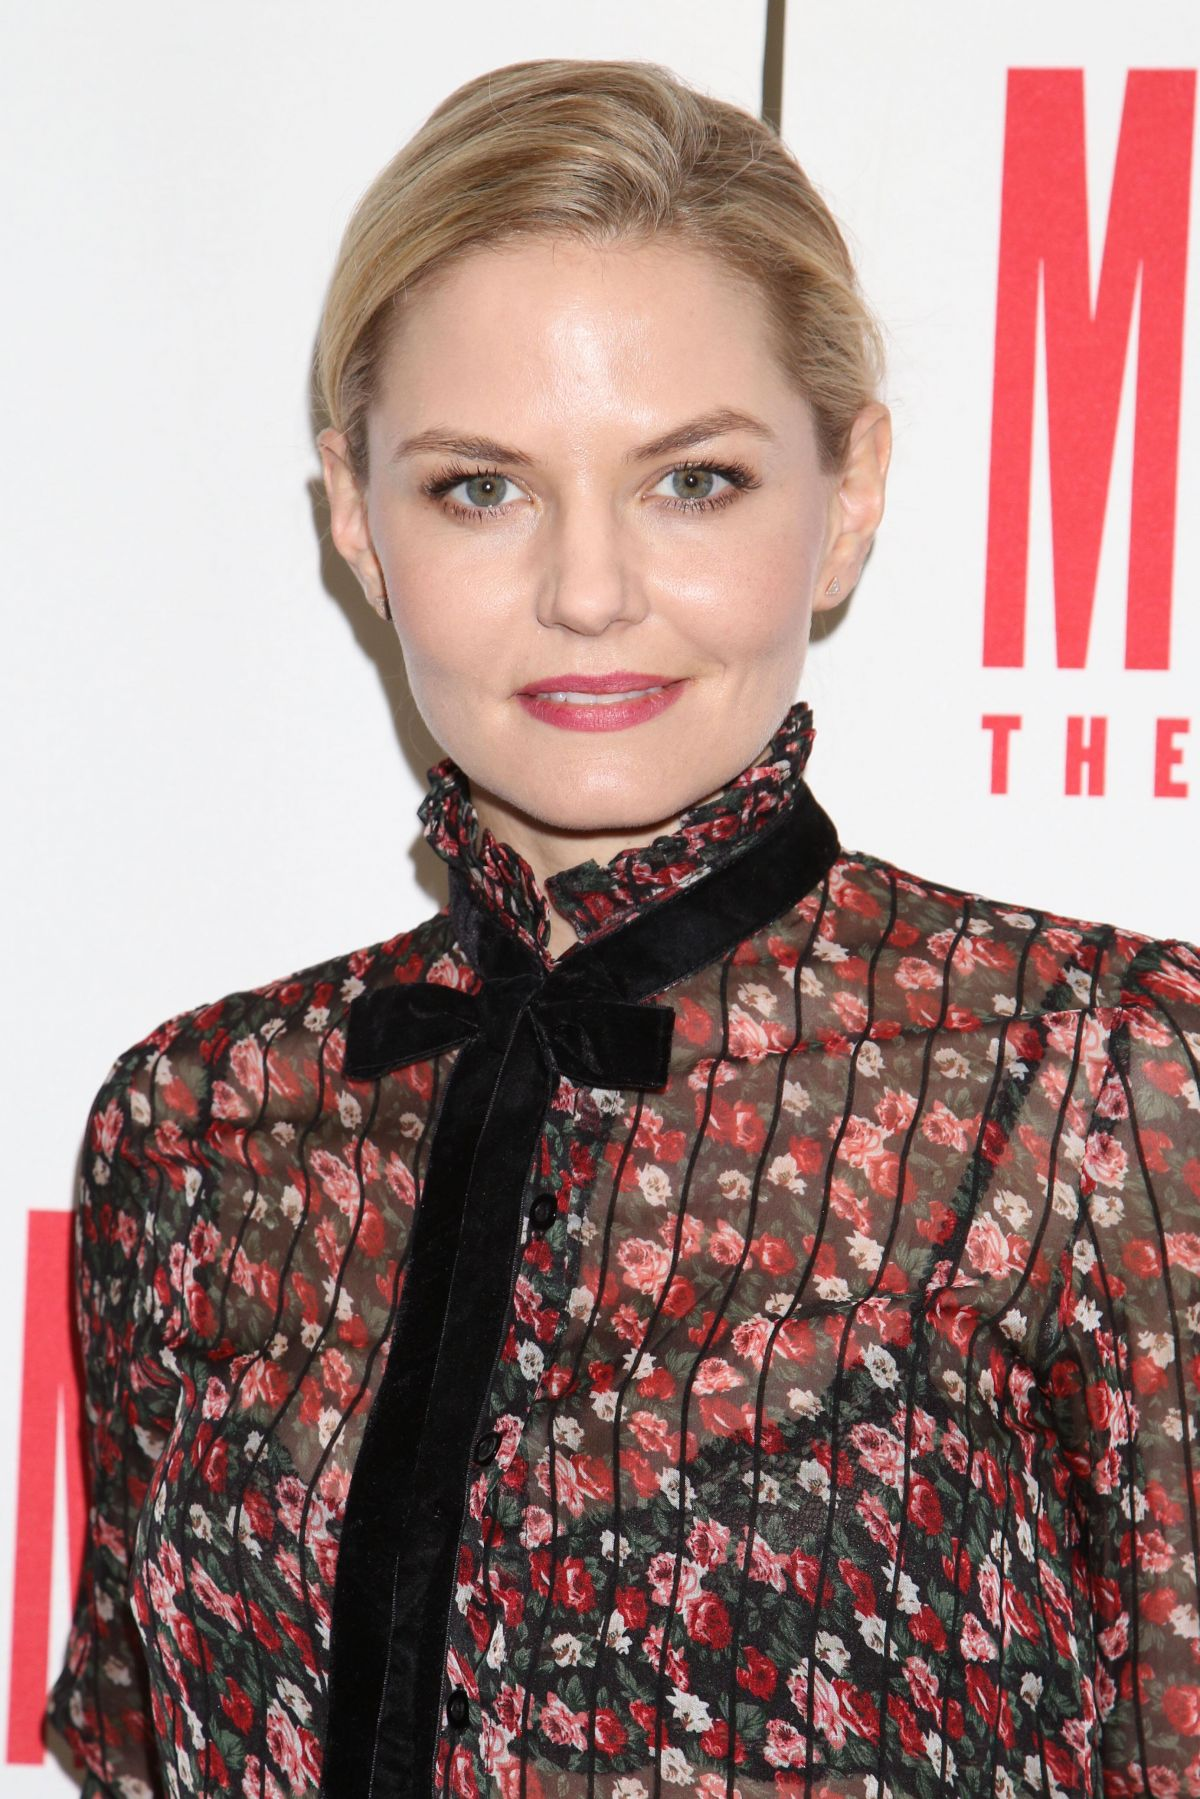 JENNIFER MORRISON at The End of Longing Media Day in New York 04/20/2017